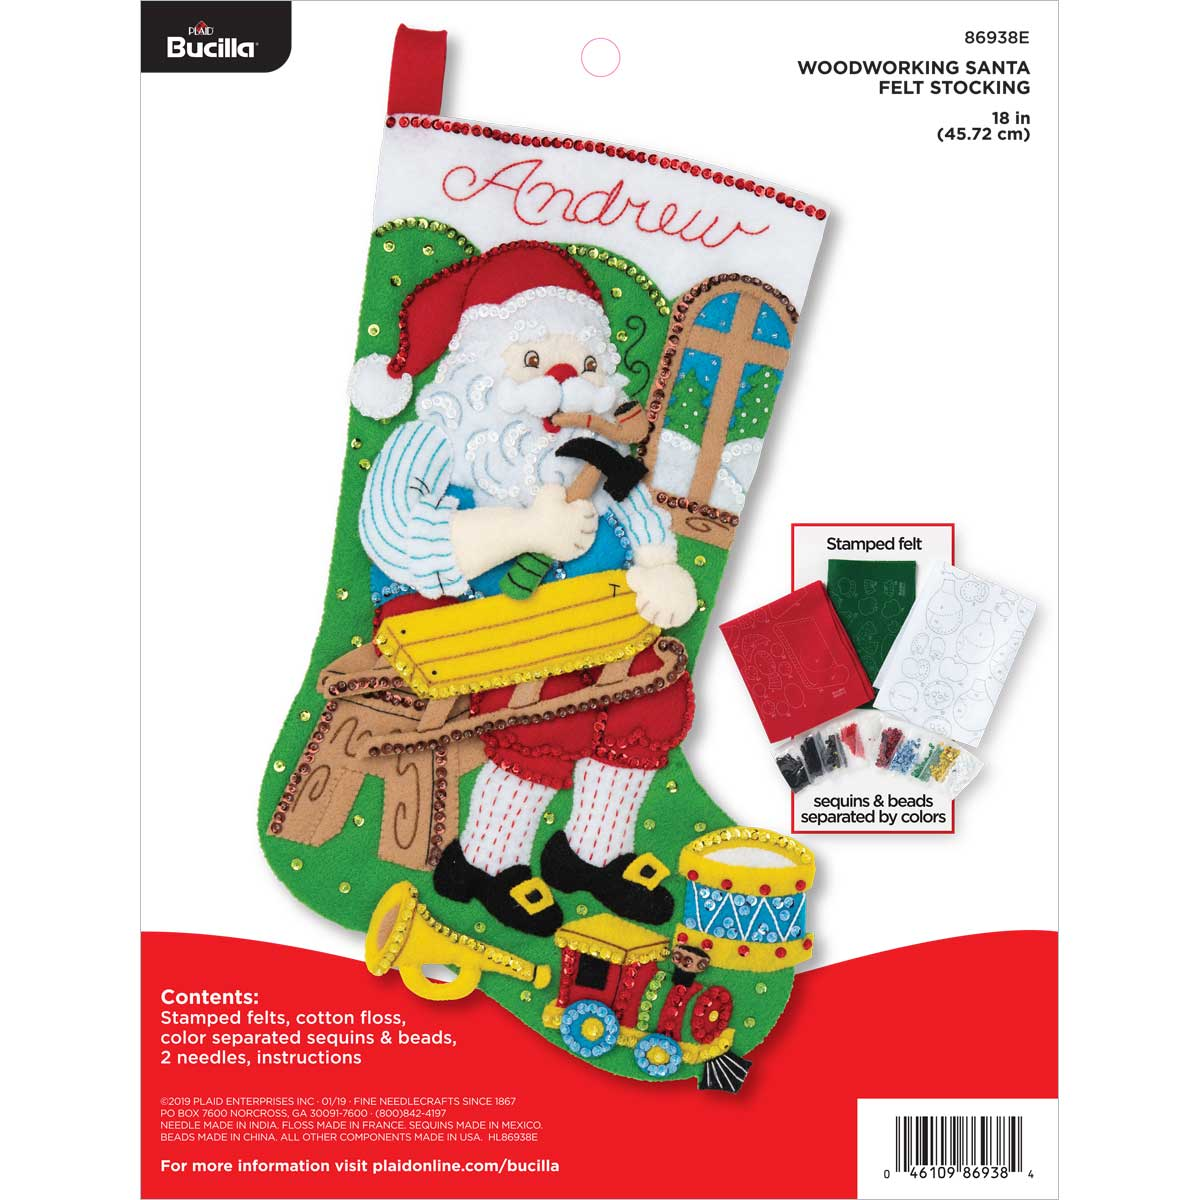 Bucilla ® Seasonal - Felt - Stocking Kits - Woodworking Santa